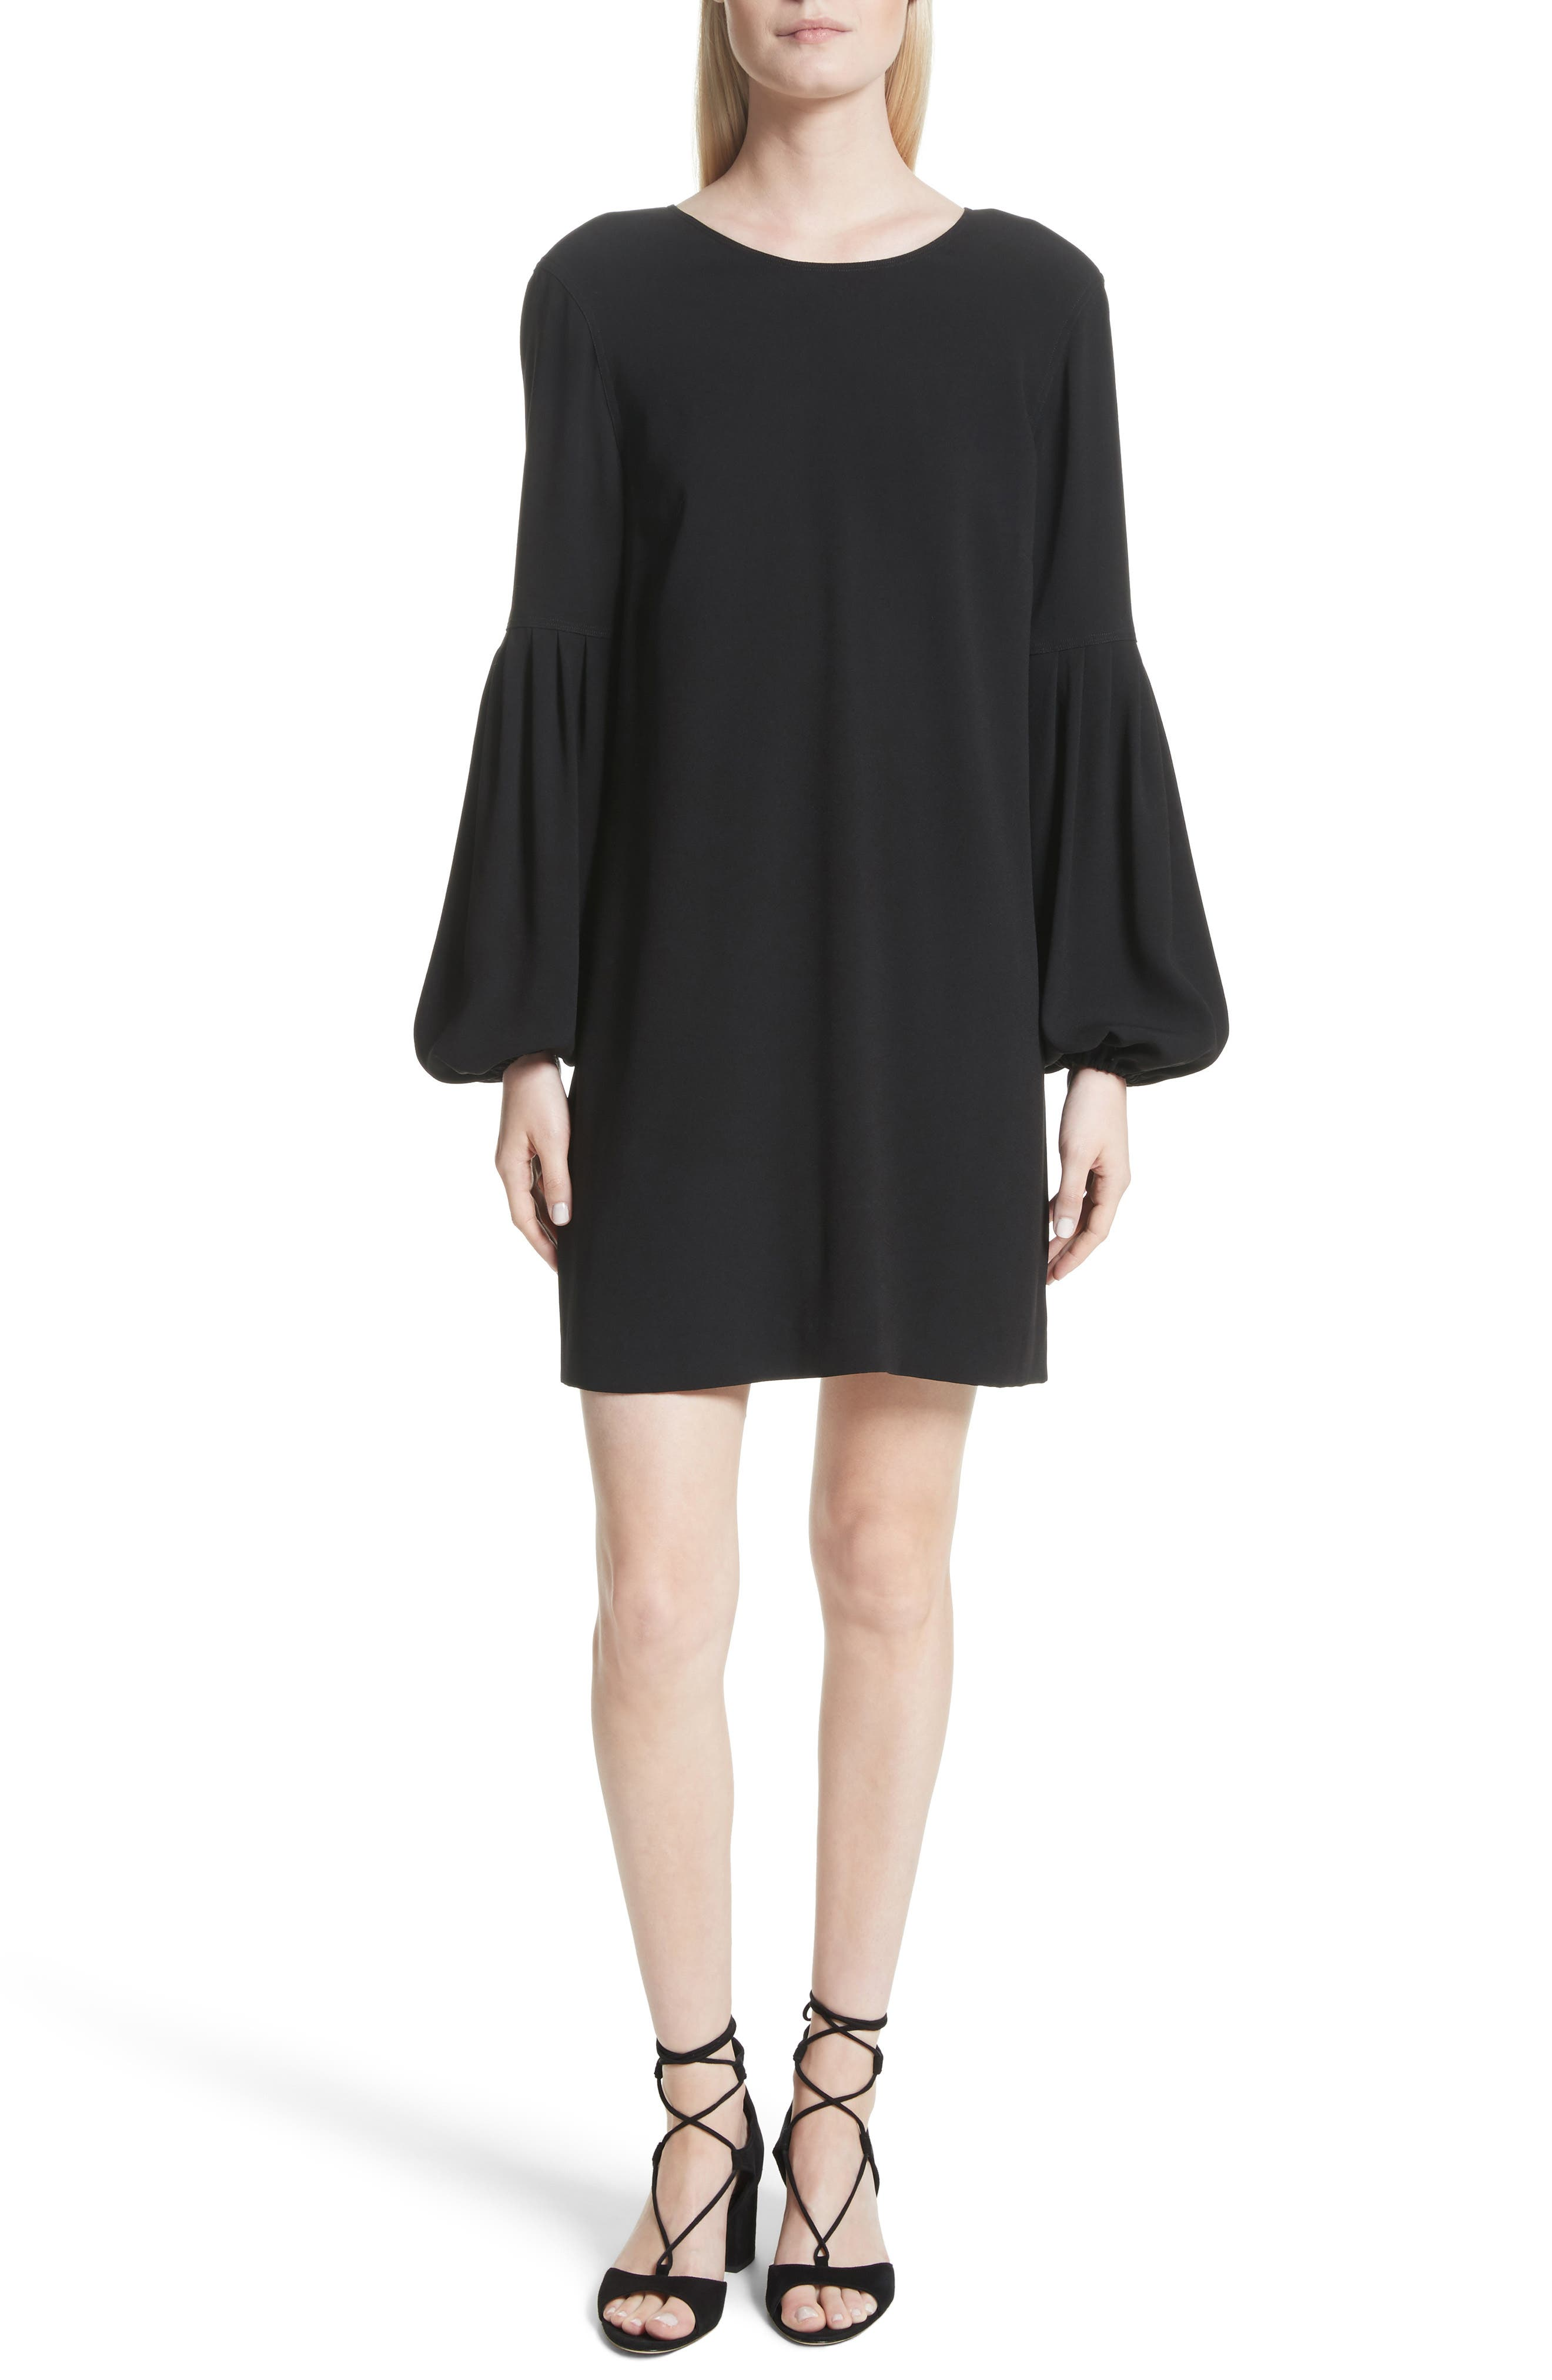 Alternate Image 1 Selected - Elizabeth and James Claudia Puff Sleeve Dress